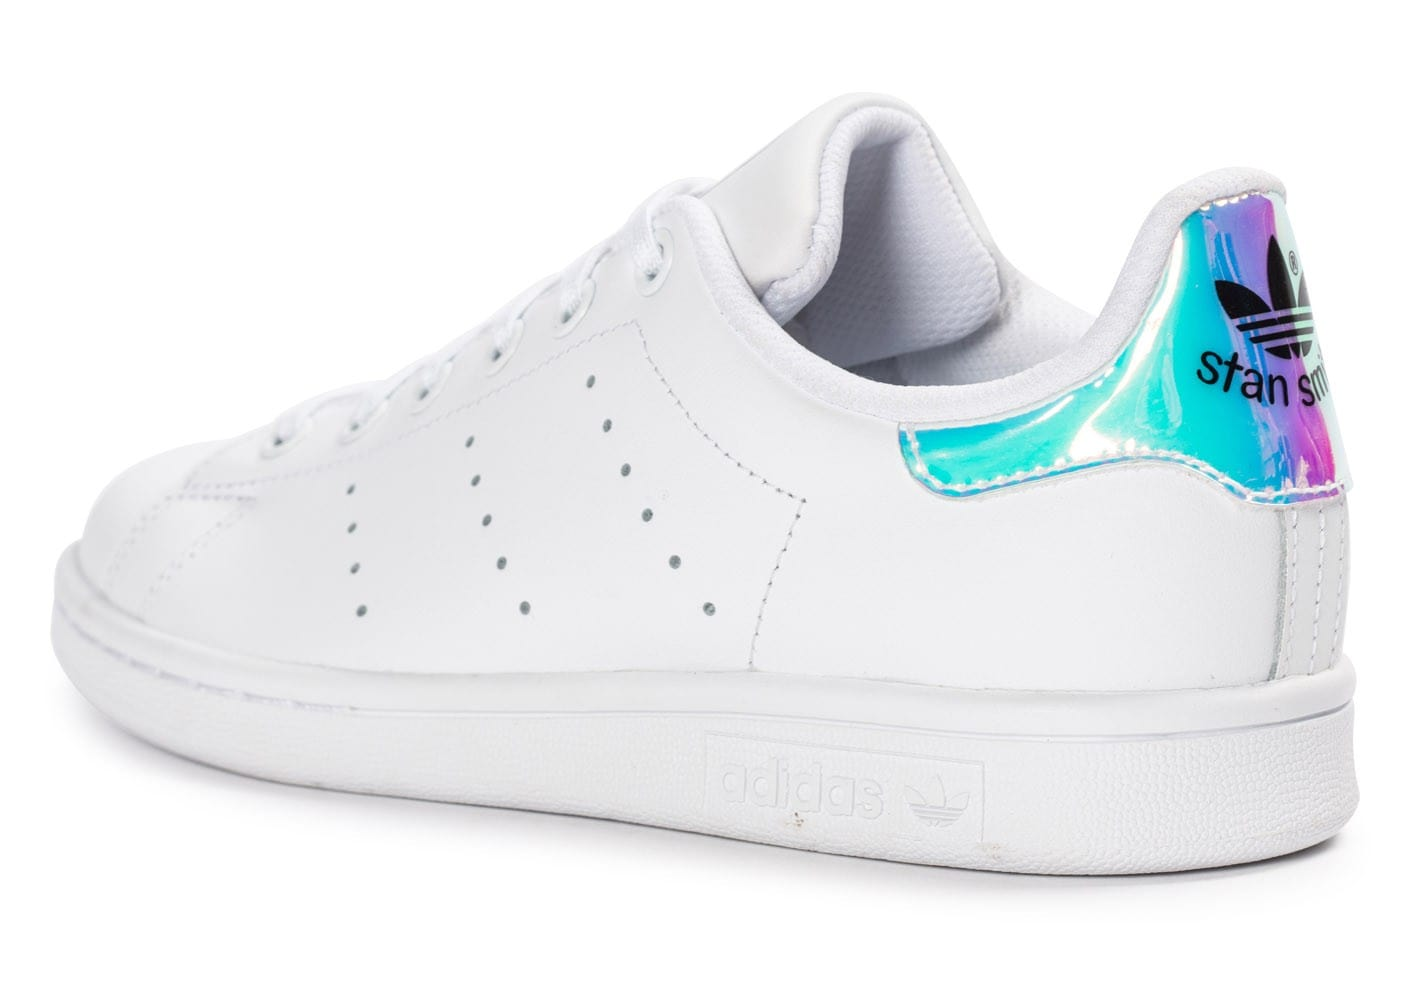 adidas stan smith iridescente blanche chaussures adidas chausport. Black Bedroom Furniture Sets. Home Design Ideas